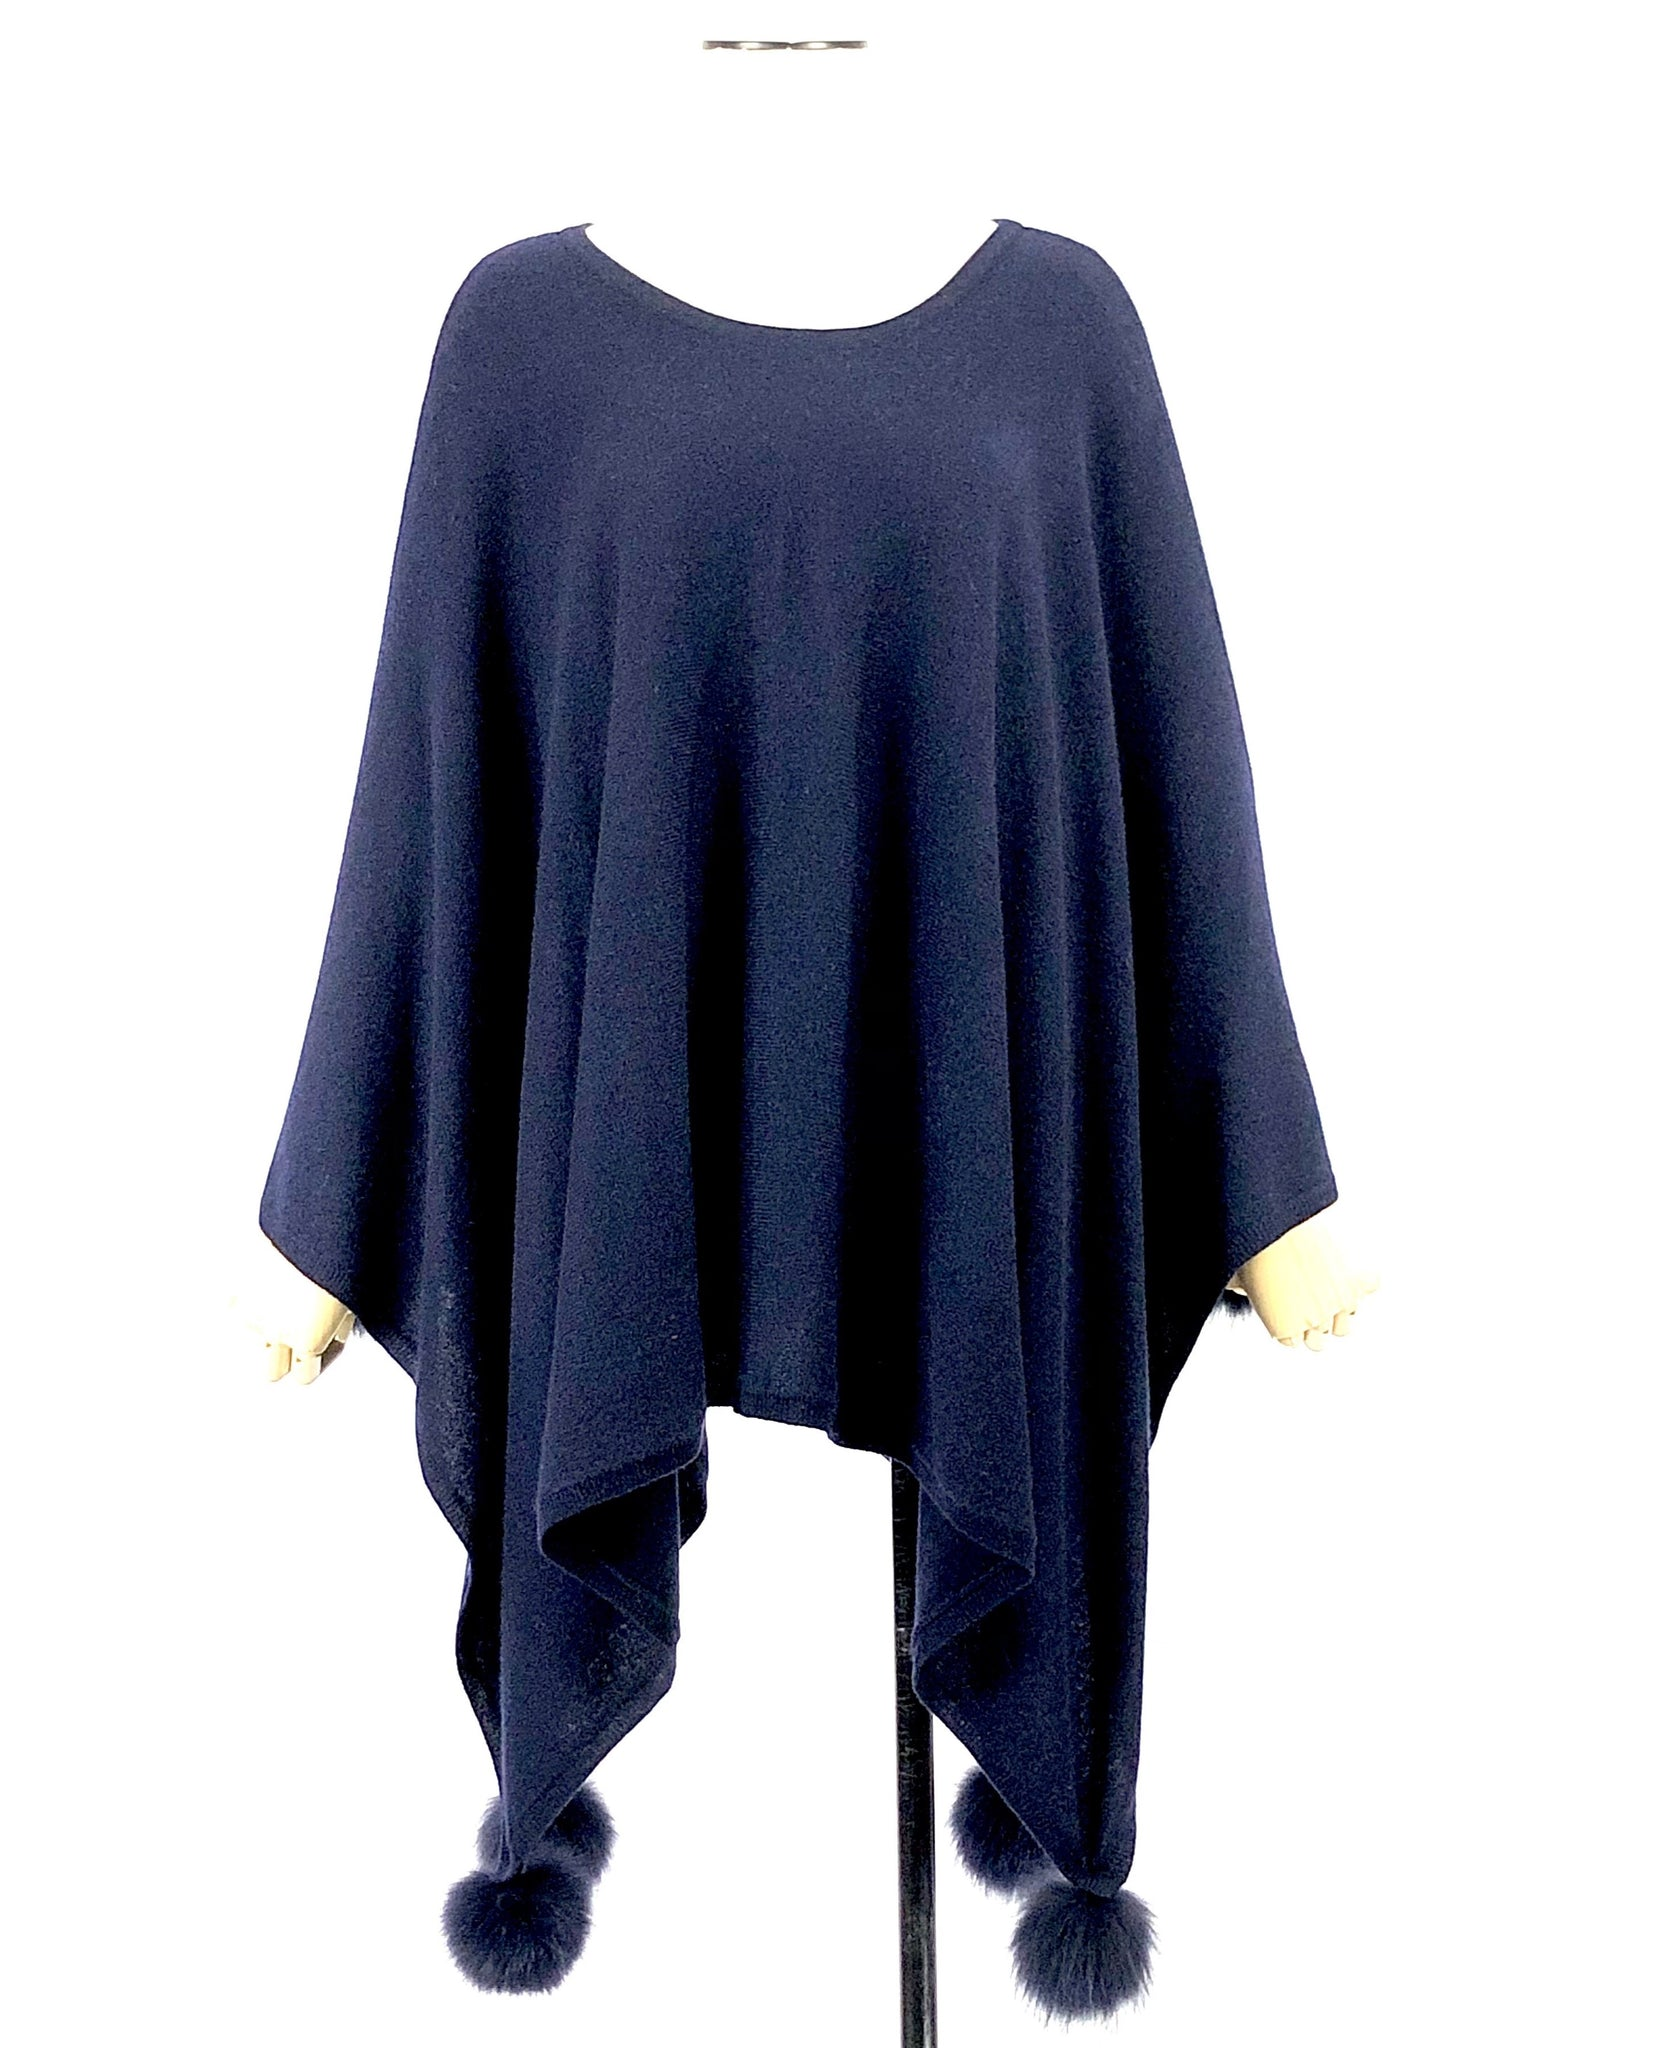 In Cashmere | Royal Blue Cashmere Poncho Size L/XL